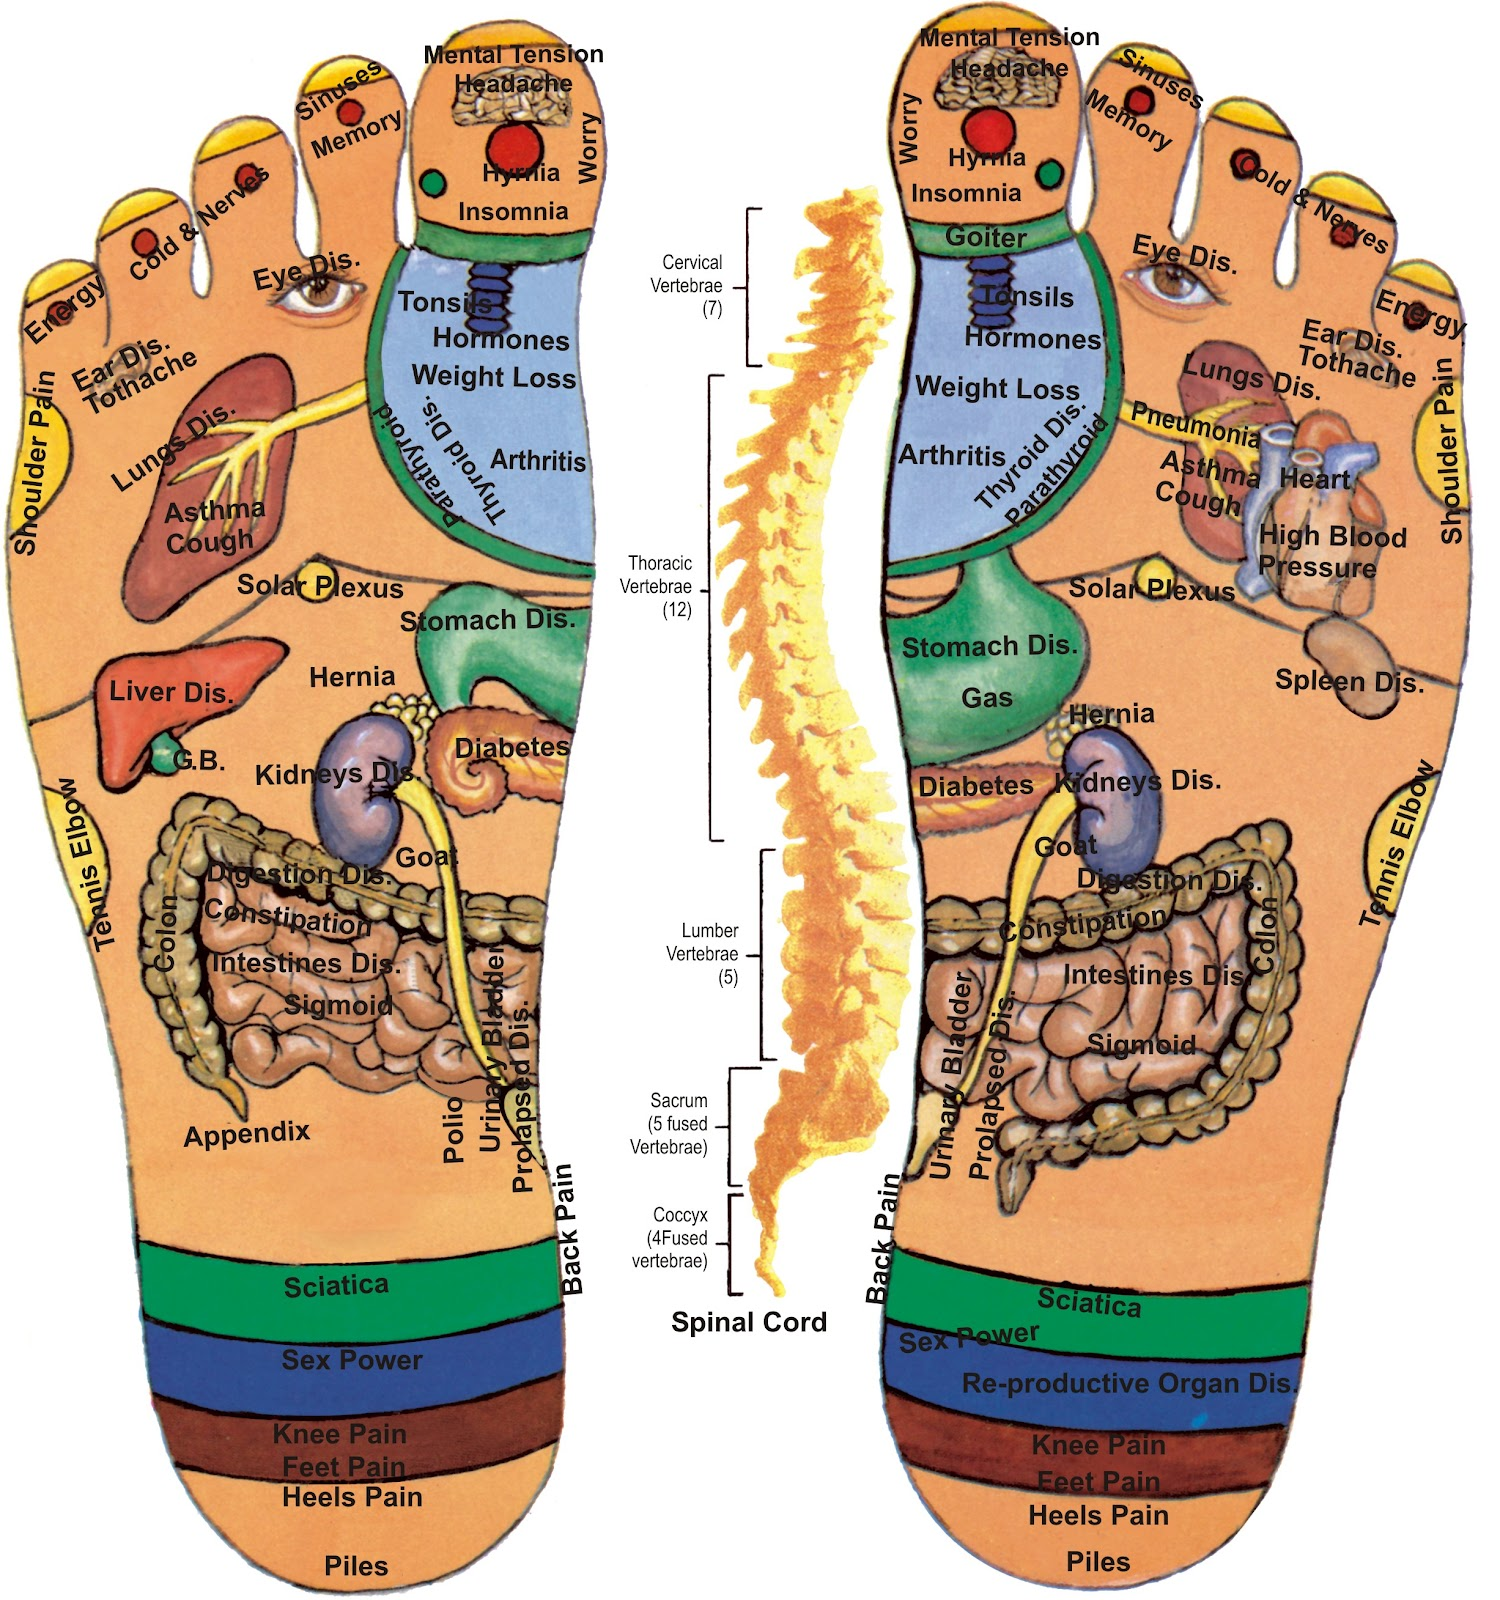 Acupressure Diagram Of Pressure Points Wiring Three Way Switch 3 My Own Thoughts Reflexology Charts Collection